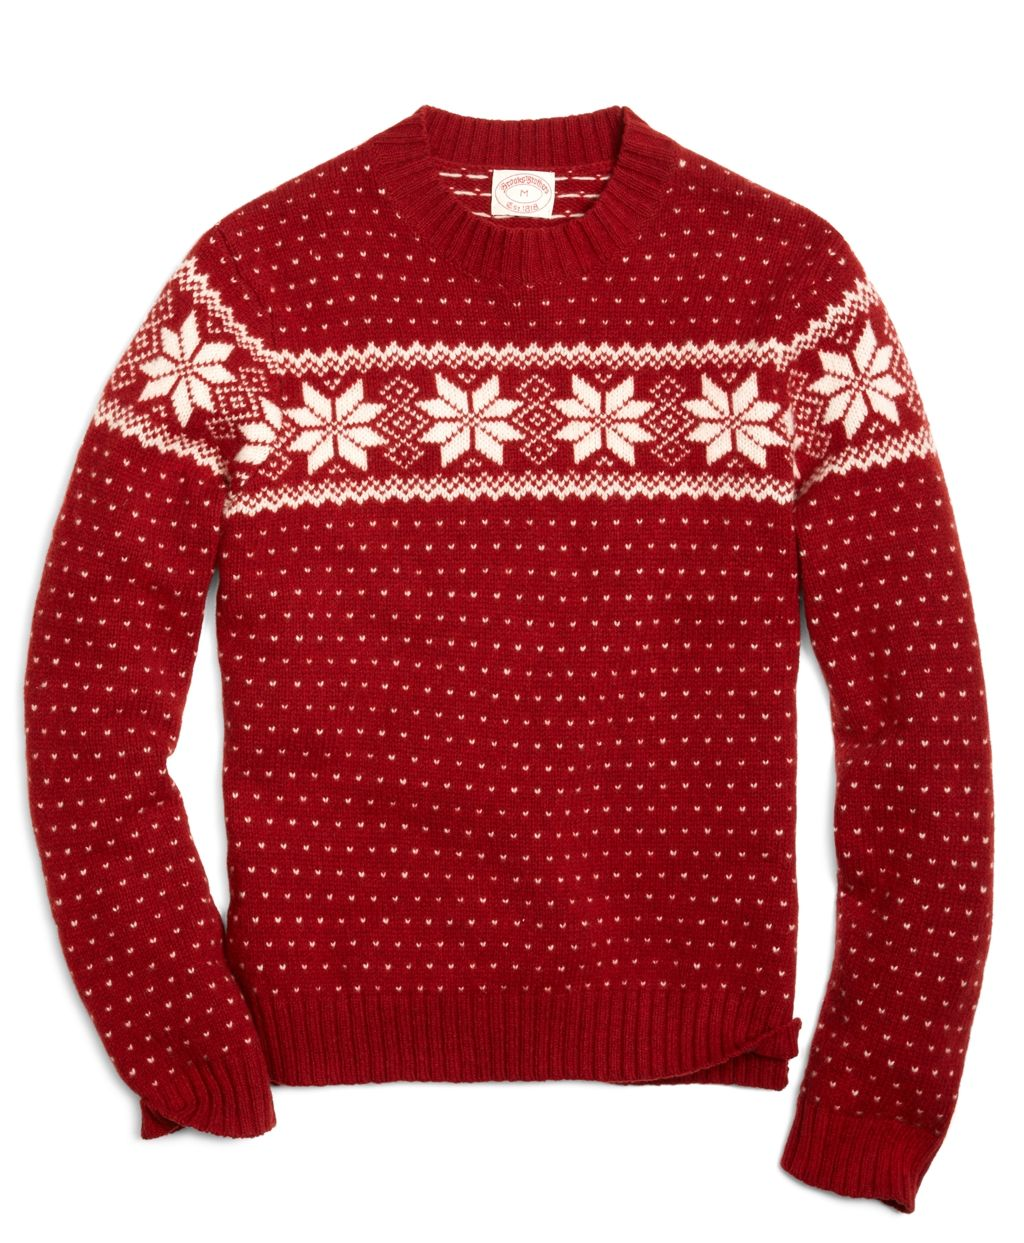 Snowflake Fair Isle Crewneck Sweater | ├ HIS STYLE ┤ | Pinterest ...